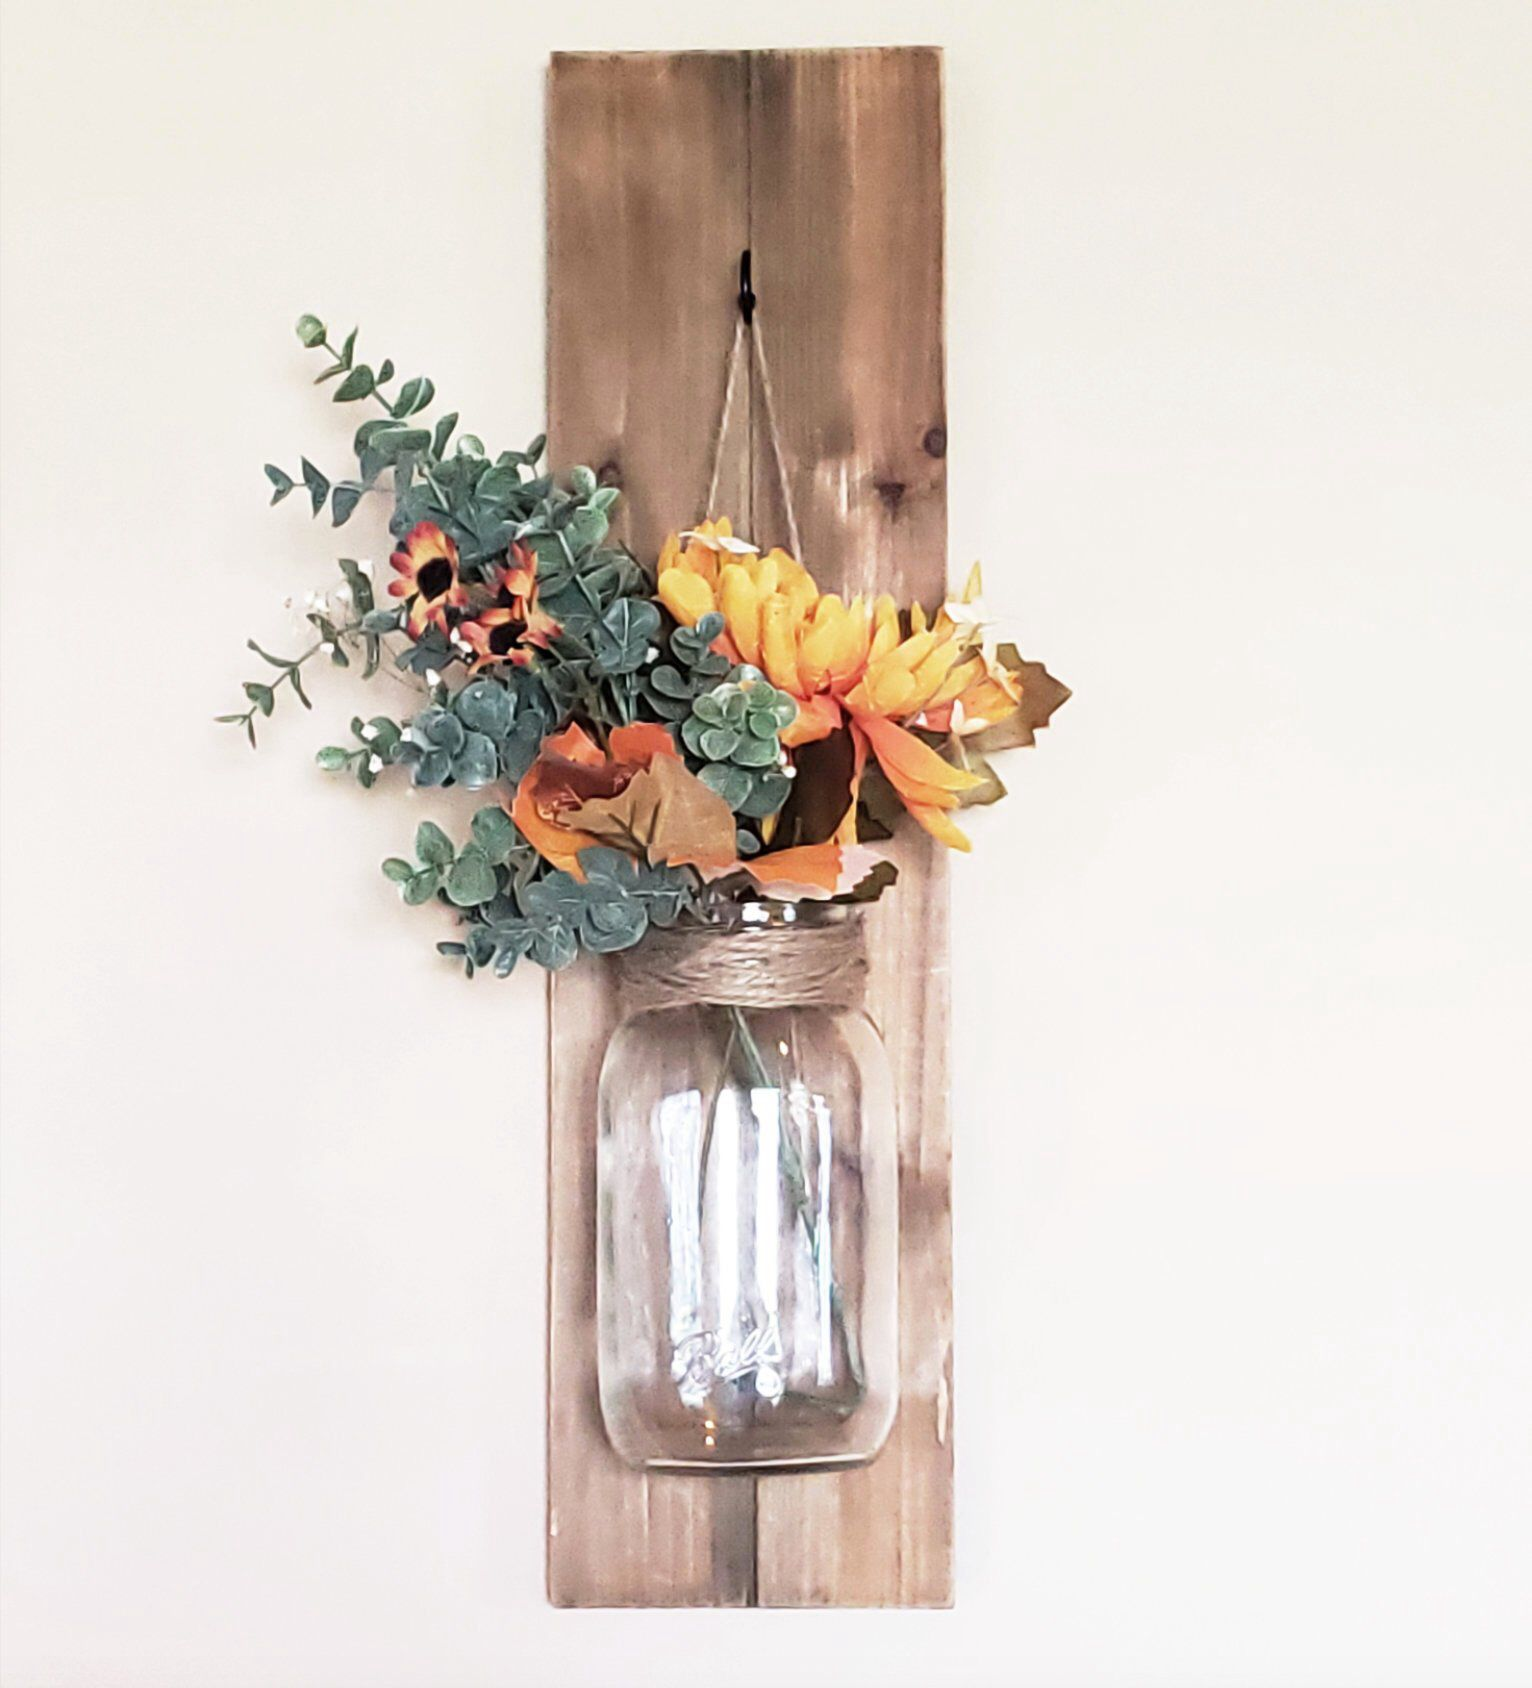 Hanging Mason Jar Decorative Wall Hanging Flower Vase Candle Holder By Aptsweetapt On Etsy Https Ww Candle Wall Decor Wall Flower Vases Hanging Wall Vase